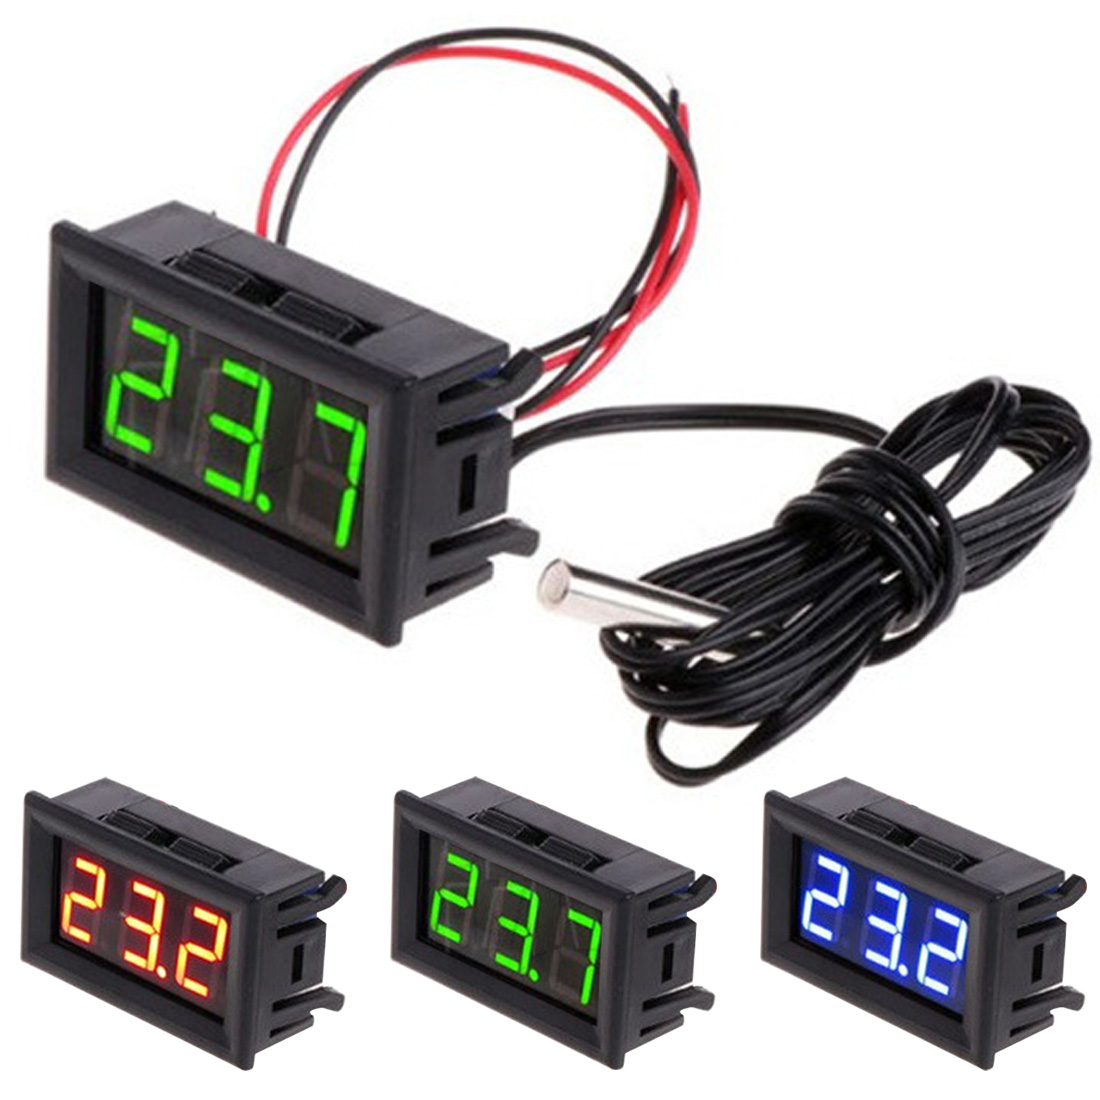 DC 5-12V Digital LED -50 ~ 110C Thermometer Automotive Temperature Monitor Panel Meter Digital Thermometer green led mini temperature meter dc 12v 24v digital thermometer 1m ds18b20 sensor